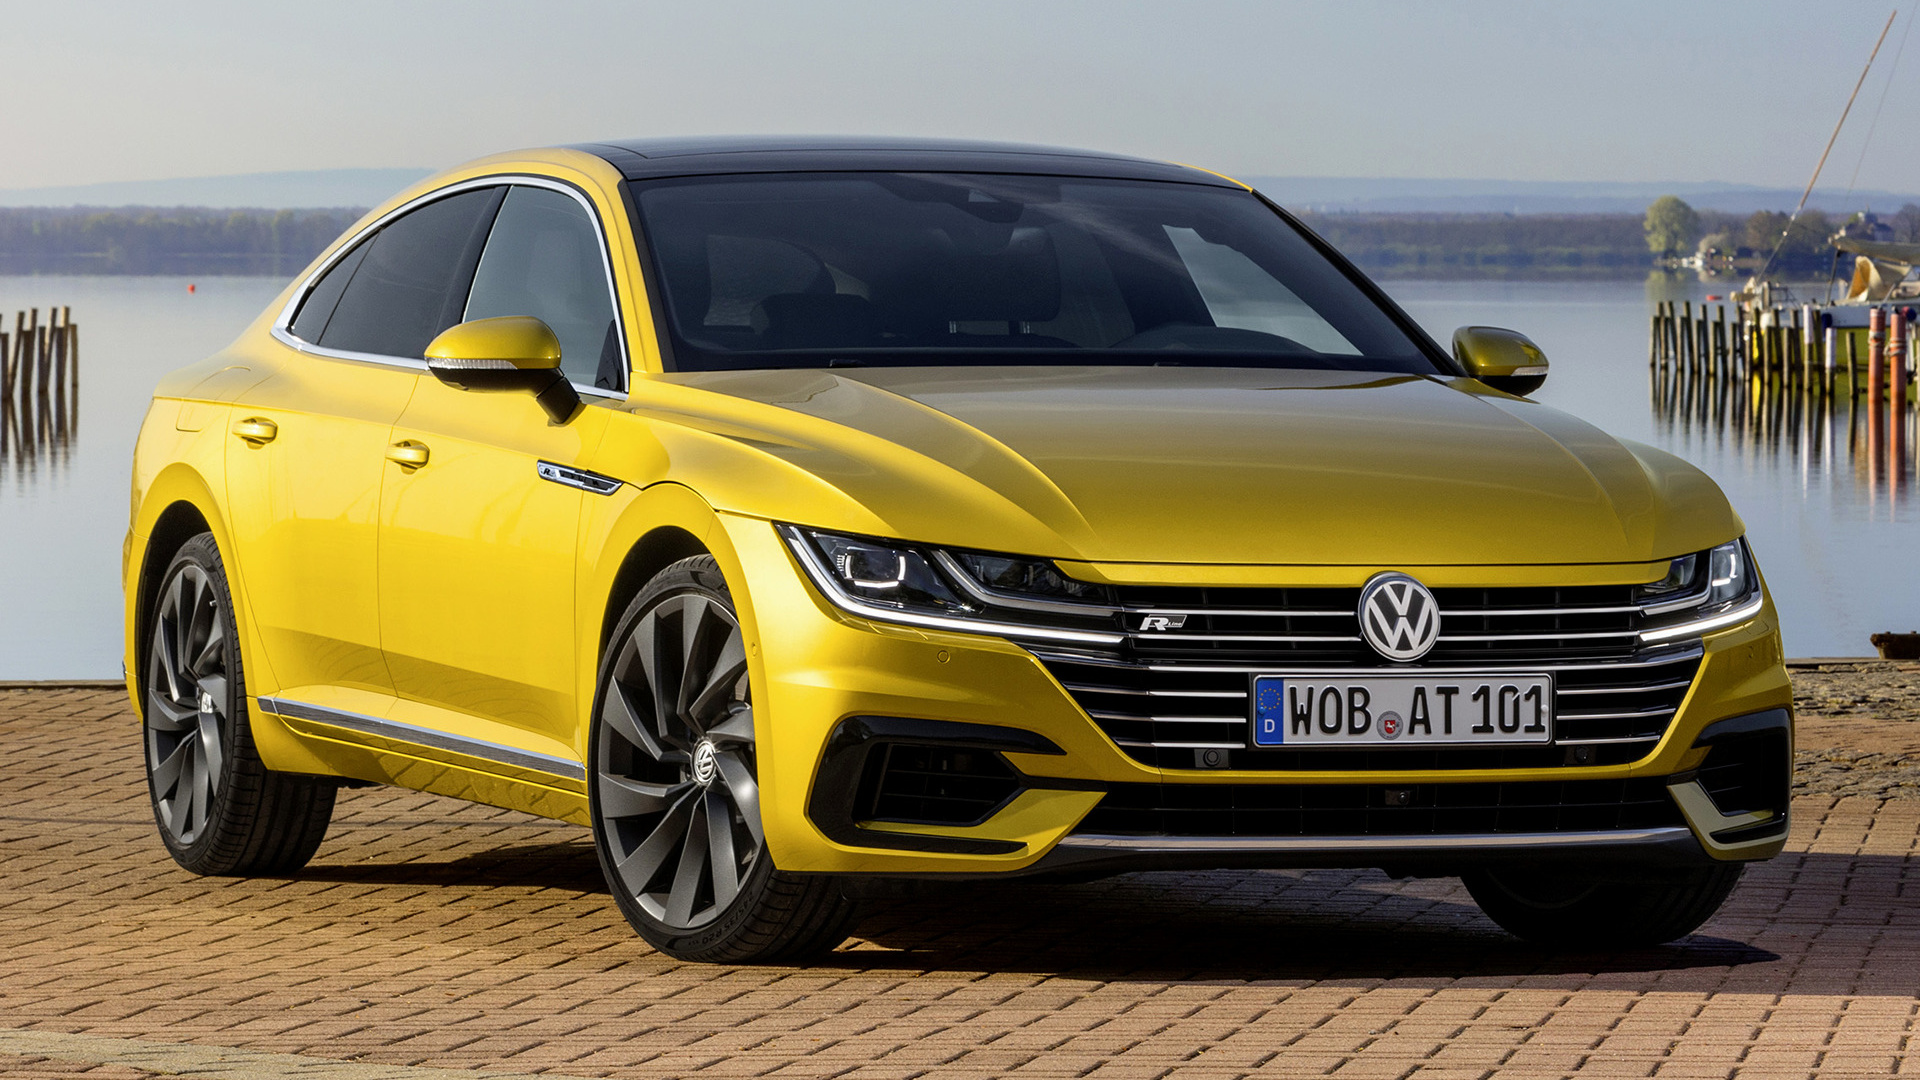 1920x1080 - Volkswagen Arteon Wallpapers 11